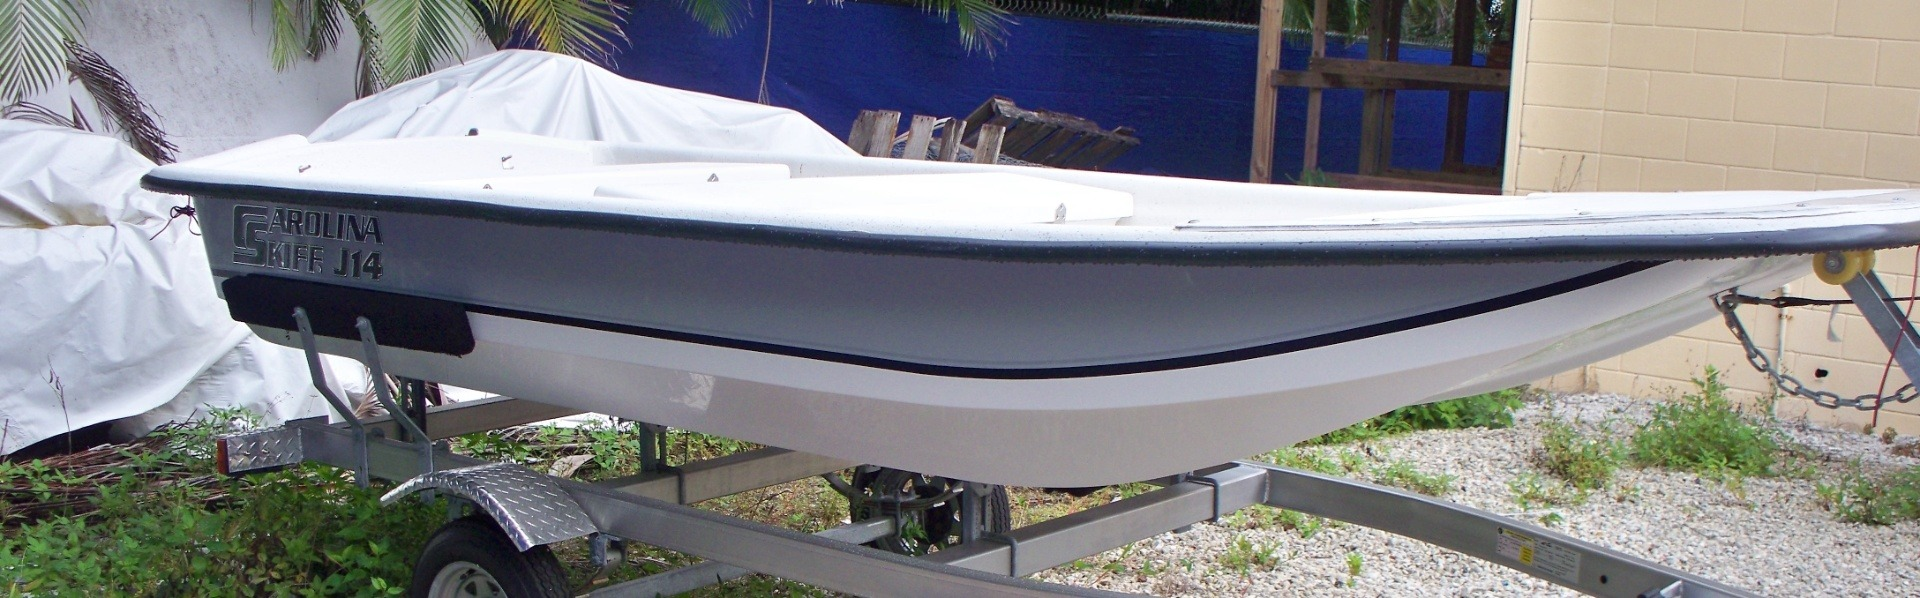 2015 Carolina Skiff J1450 in Stuart, Florida